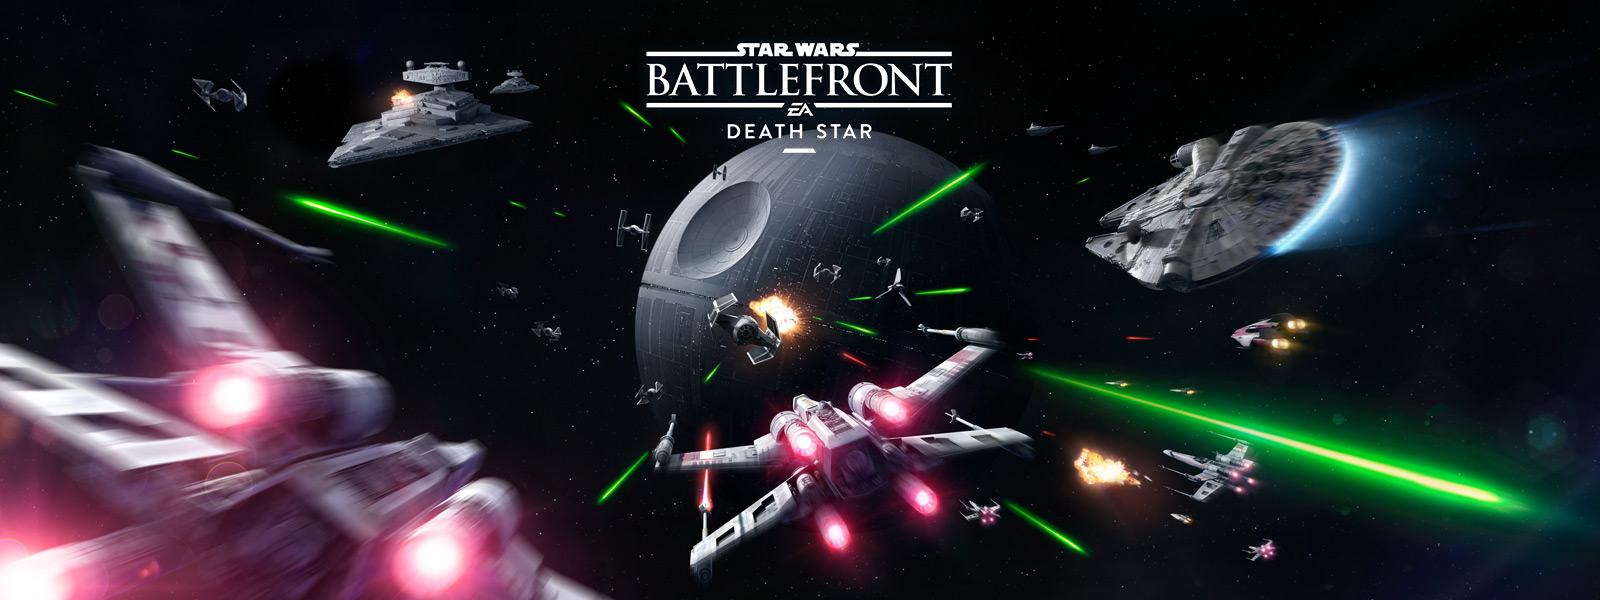 Death Star de Star Wars Battlefront